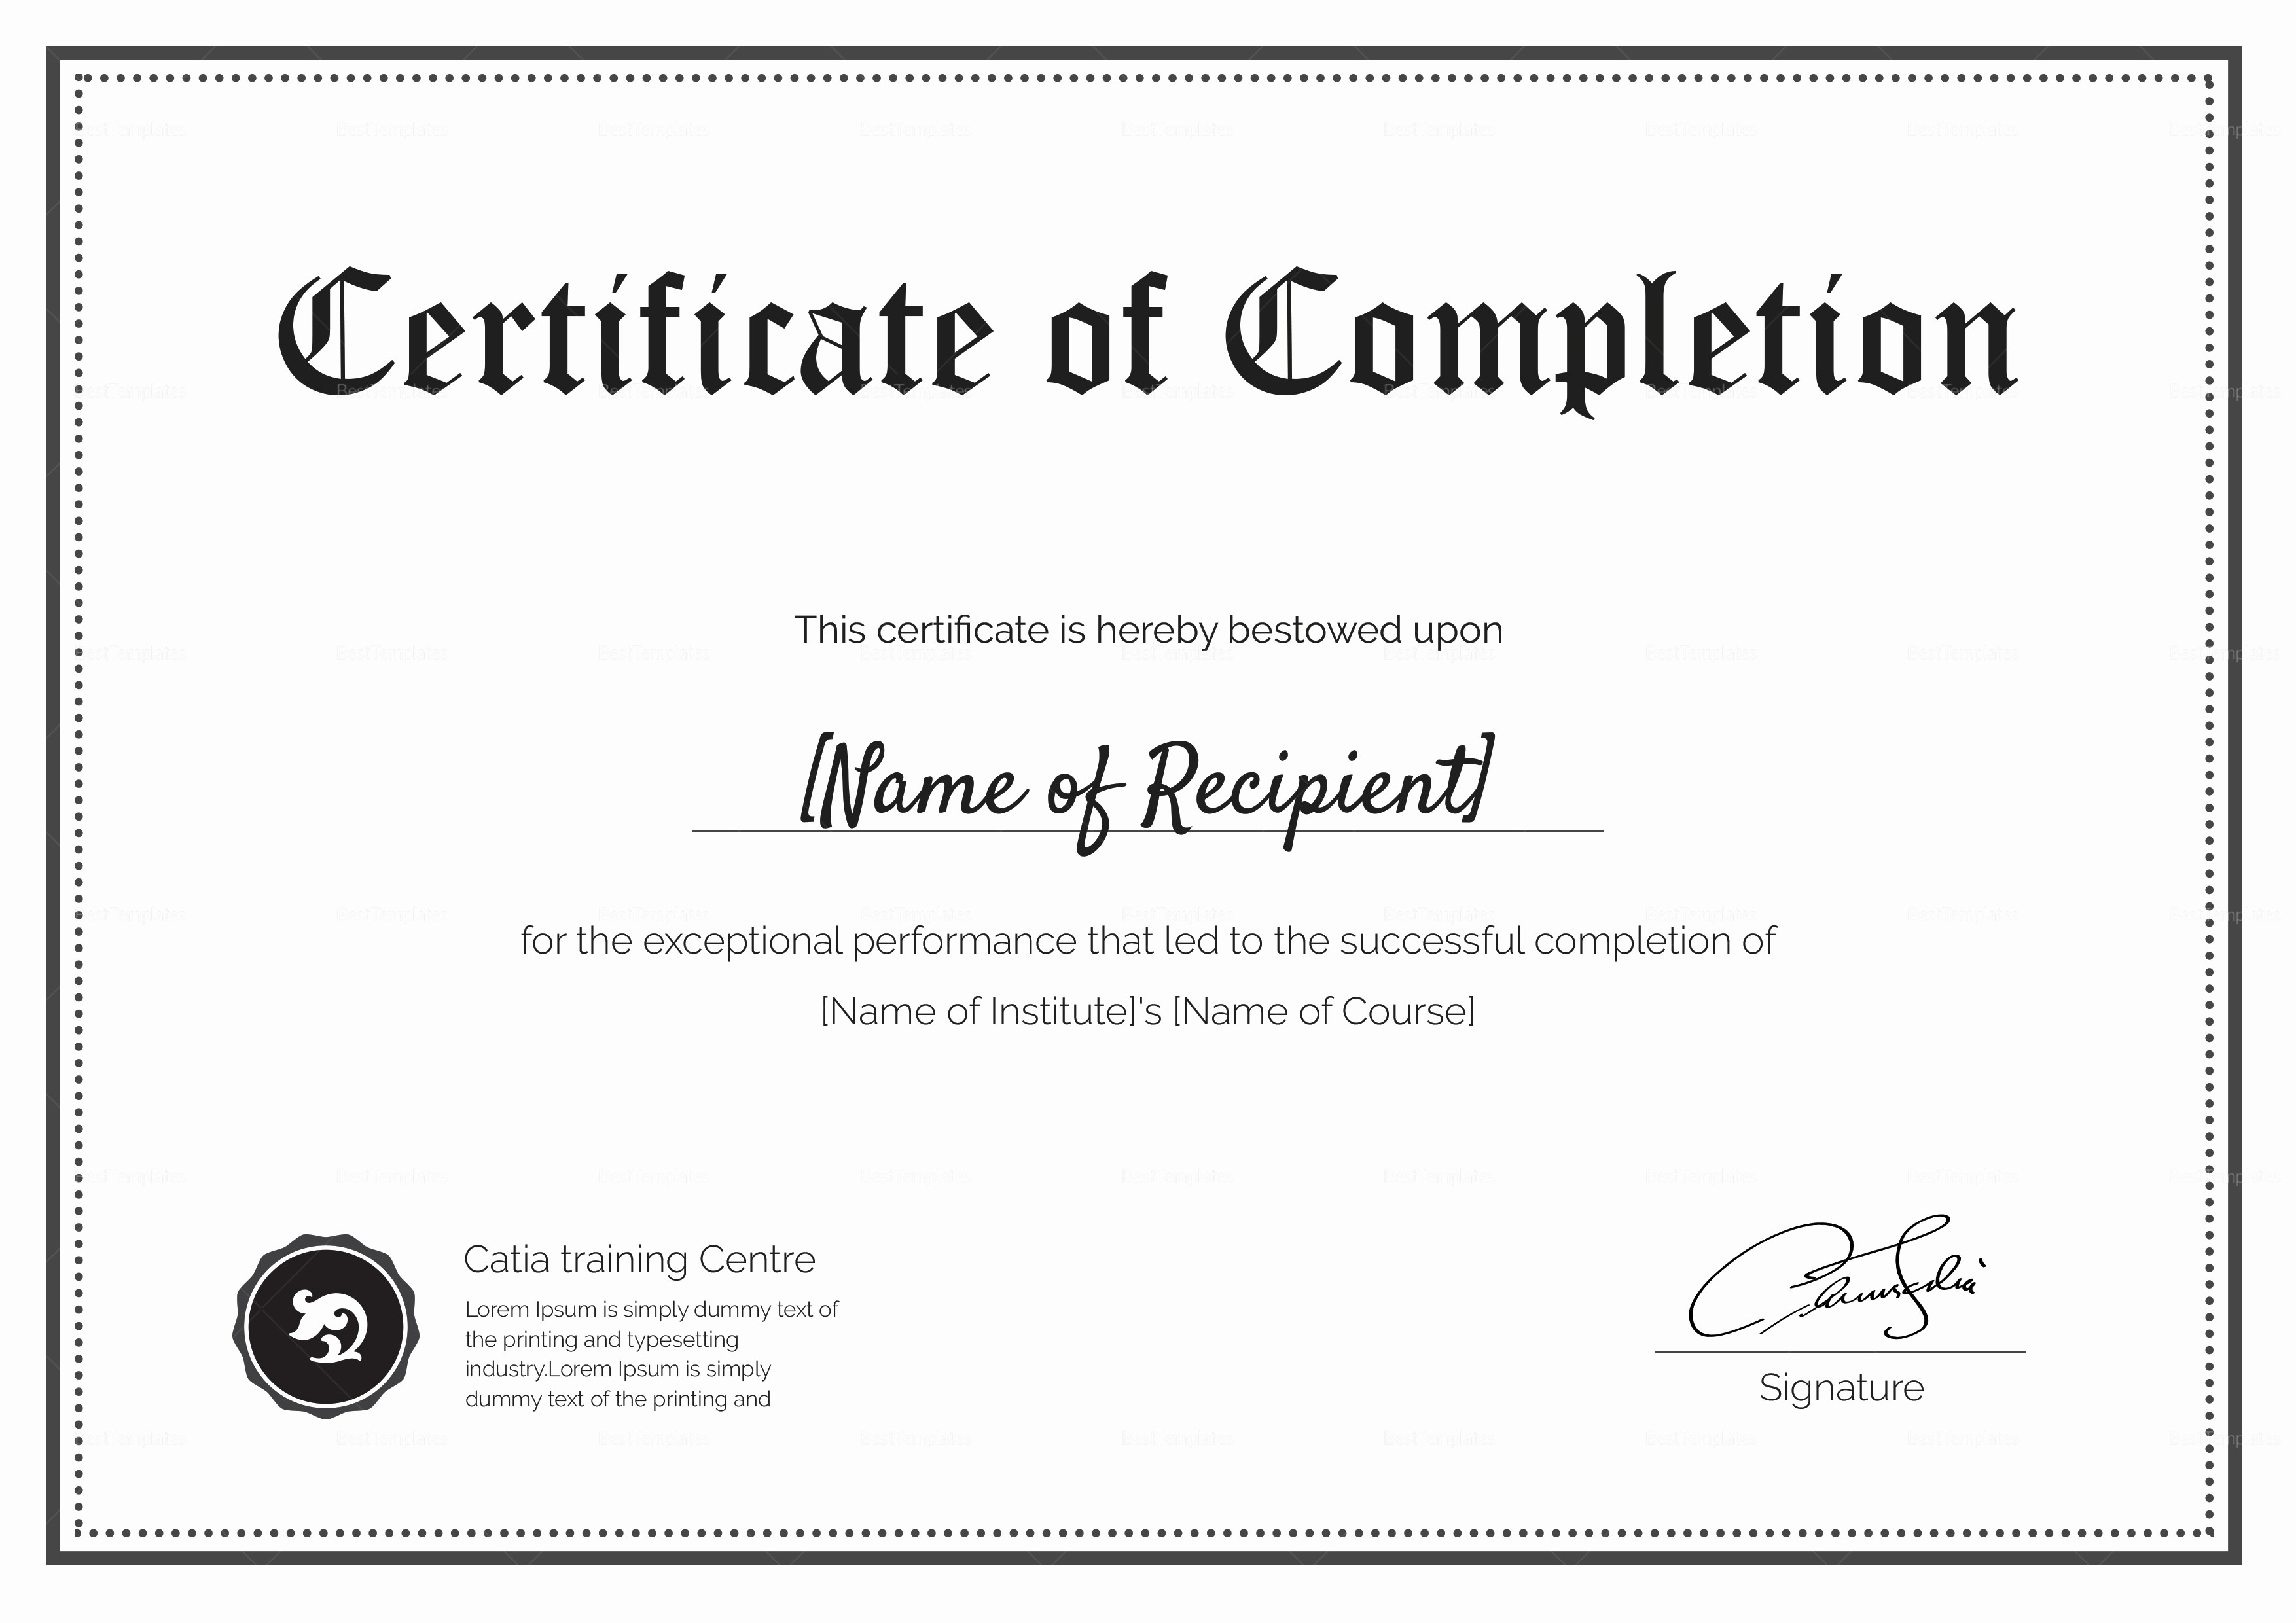 Blank Certificate Of Completion Template Lovely Blank Pletion Certificate Design Template In Psd Word